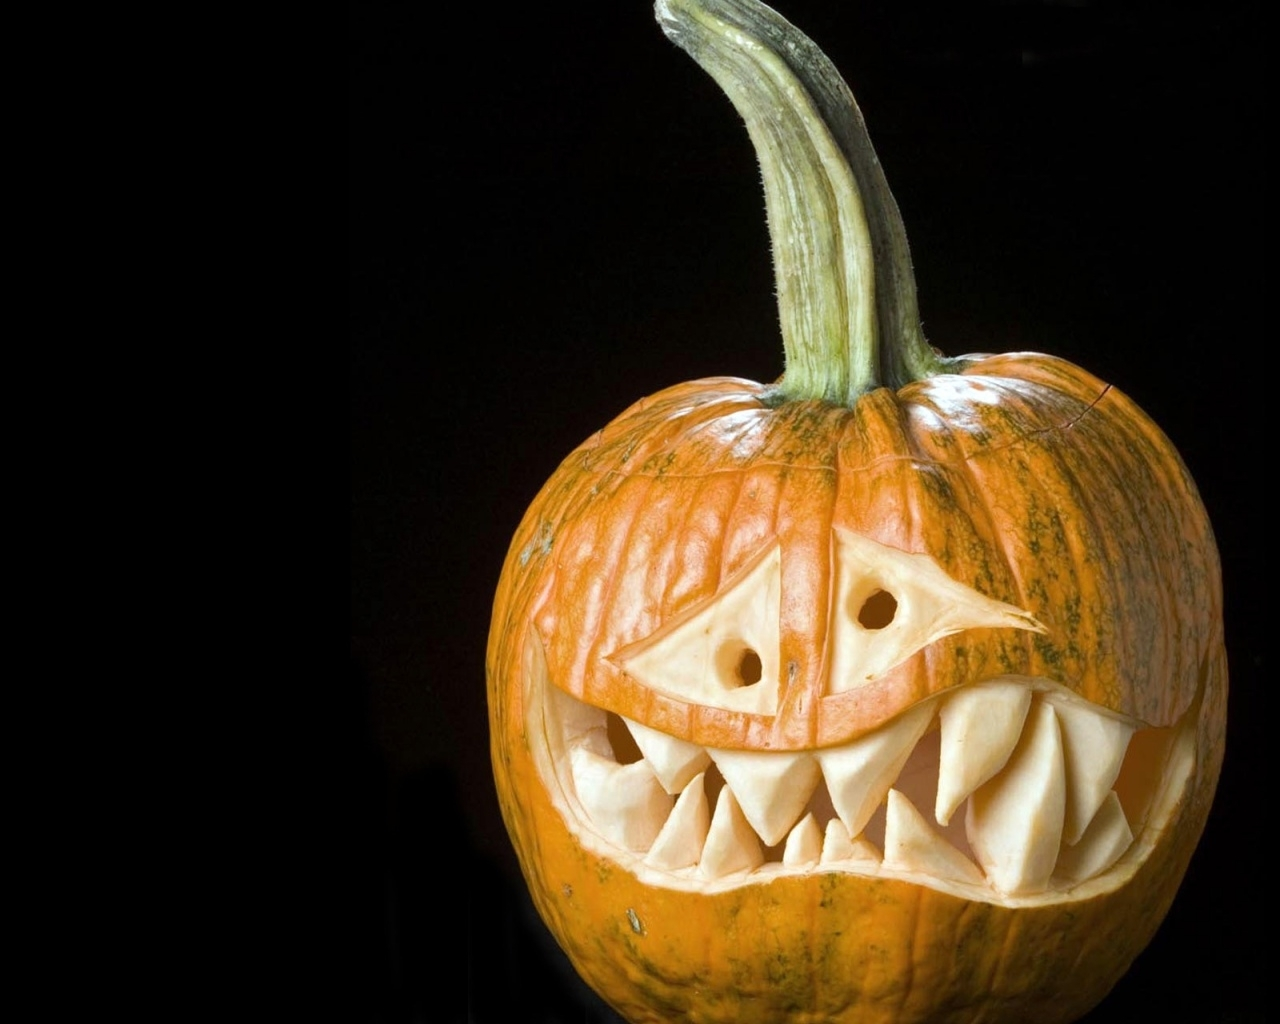 4945 download wallpaper Funny, Holidays, Food, Halloween screensavers and pictures for free